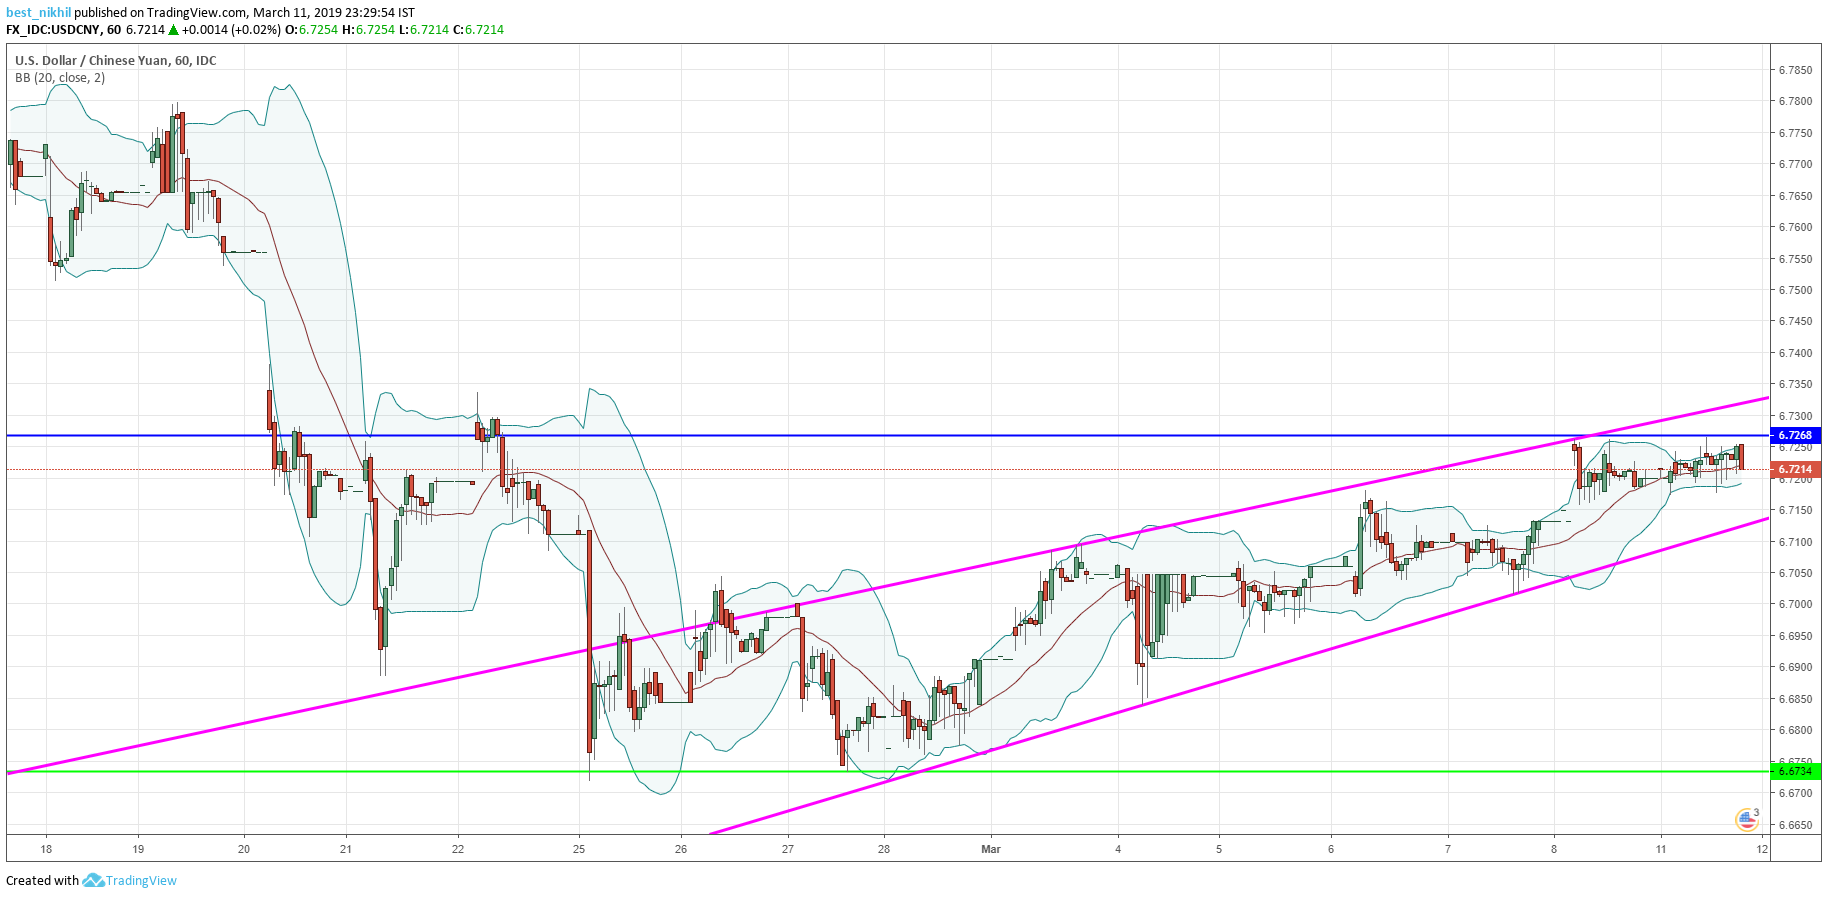 USDCNY Chart 11 March 2019